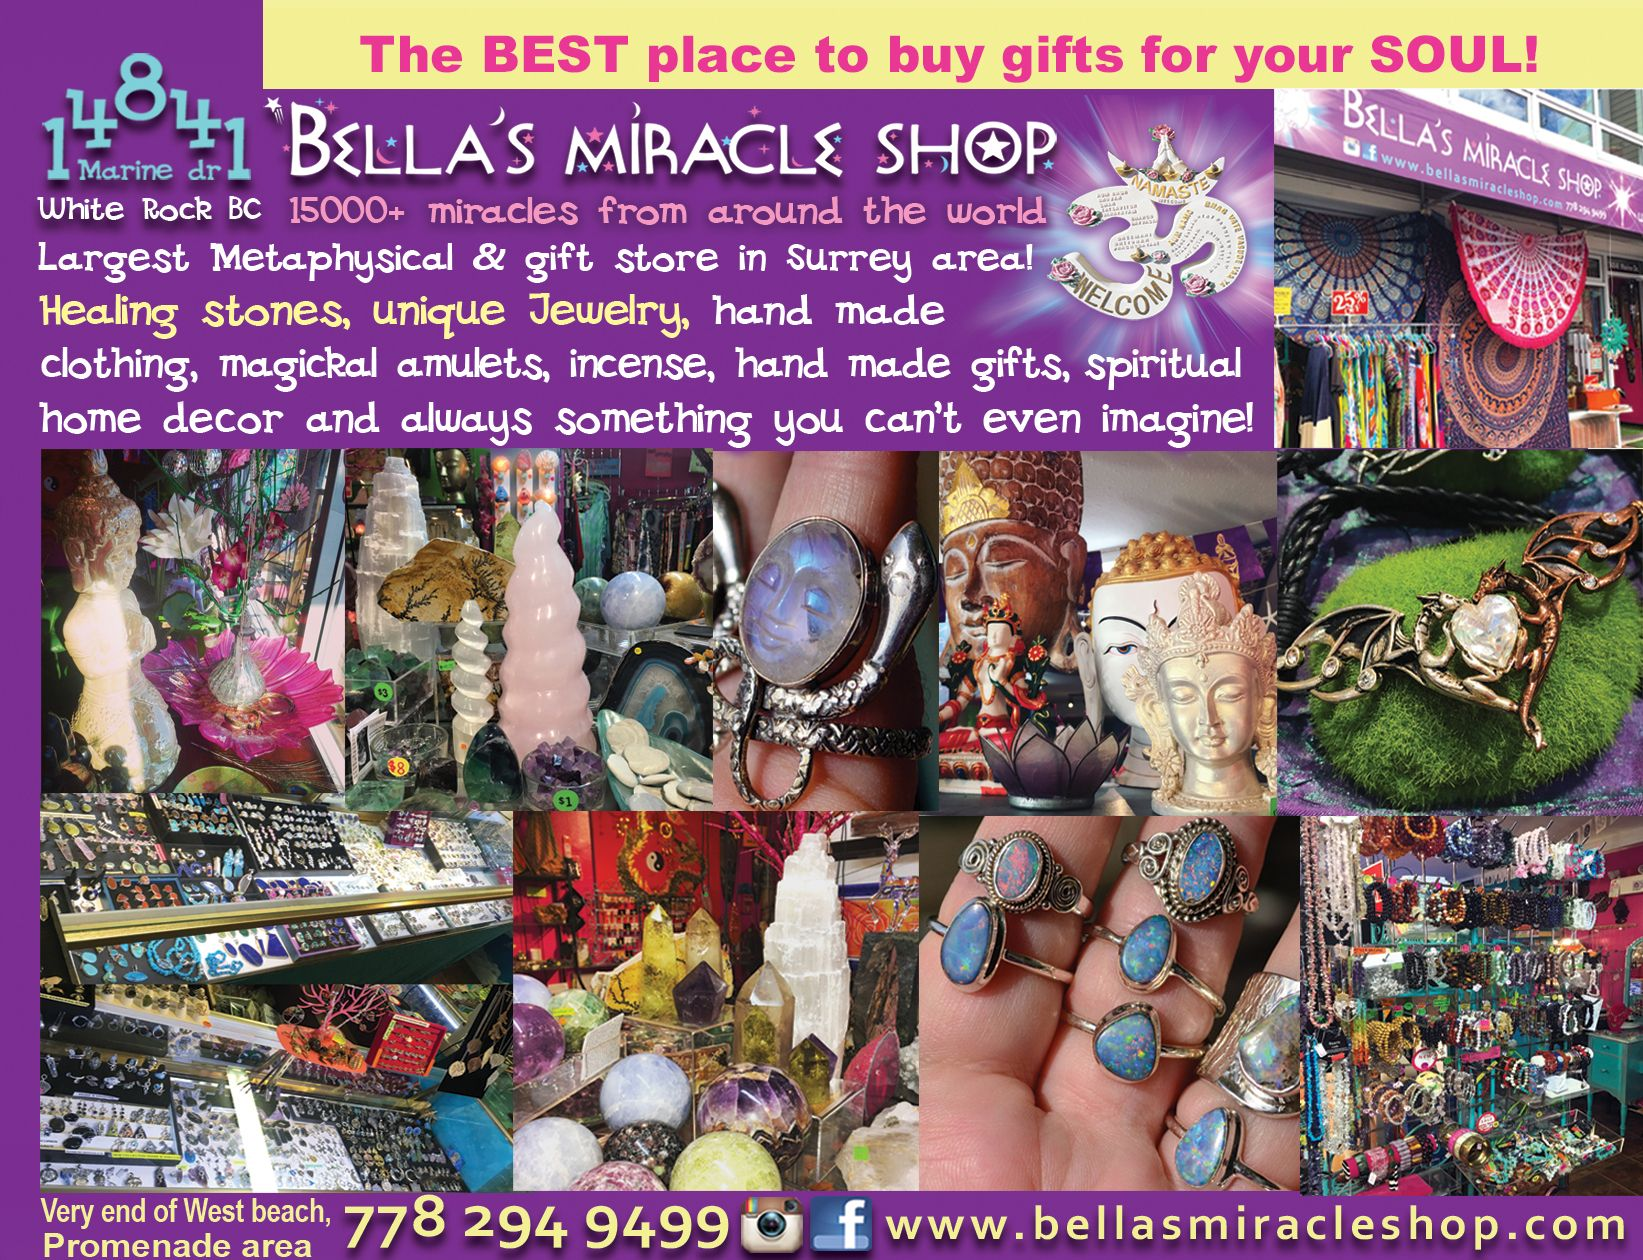 BELLA'S MIRACLE SHOP   Miracles from around the world